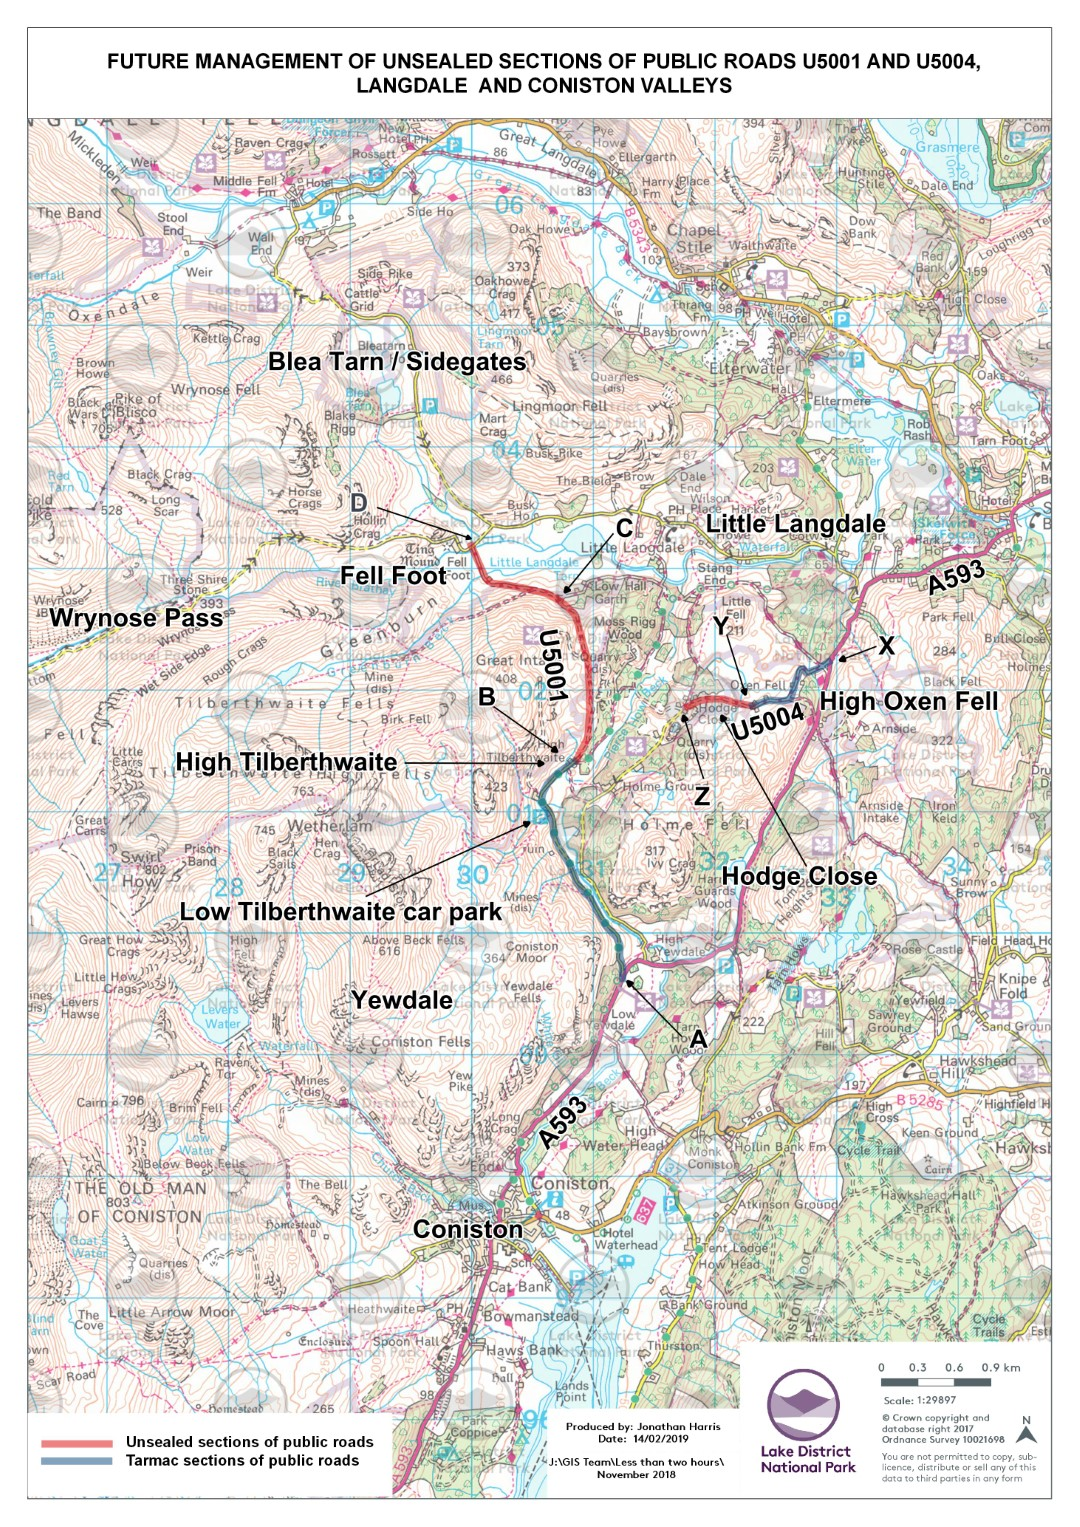 "<span style=""color: #ff0000; font-size: 14pt;""><strong>This questionnaire is only for the unsealed section of this road between High Oxen Fell and Hodge Close, shown Y-Z on this map, and called 'High Oxen Fell Road' from now on.<br><br><span style=""color: #000000; font-size: 12pt;"">There is a separate questionnaire (<a href=""https://www.surveymonkey.co.uk/r/tilberthwaite"" rel=""nofollow"" target=""_blank"">opens in new window</a>) for the Tilberthwaite Road (B-C-D).<br></span><br><span style=""color: #000000;"">After looking at the map and reading the briefing note, click 'NEXT' to start the survey.</span><br></strong></span>"